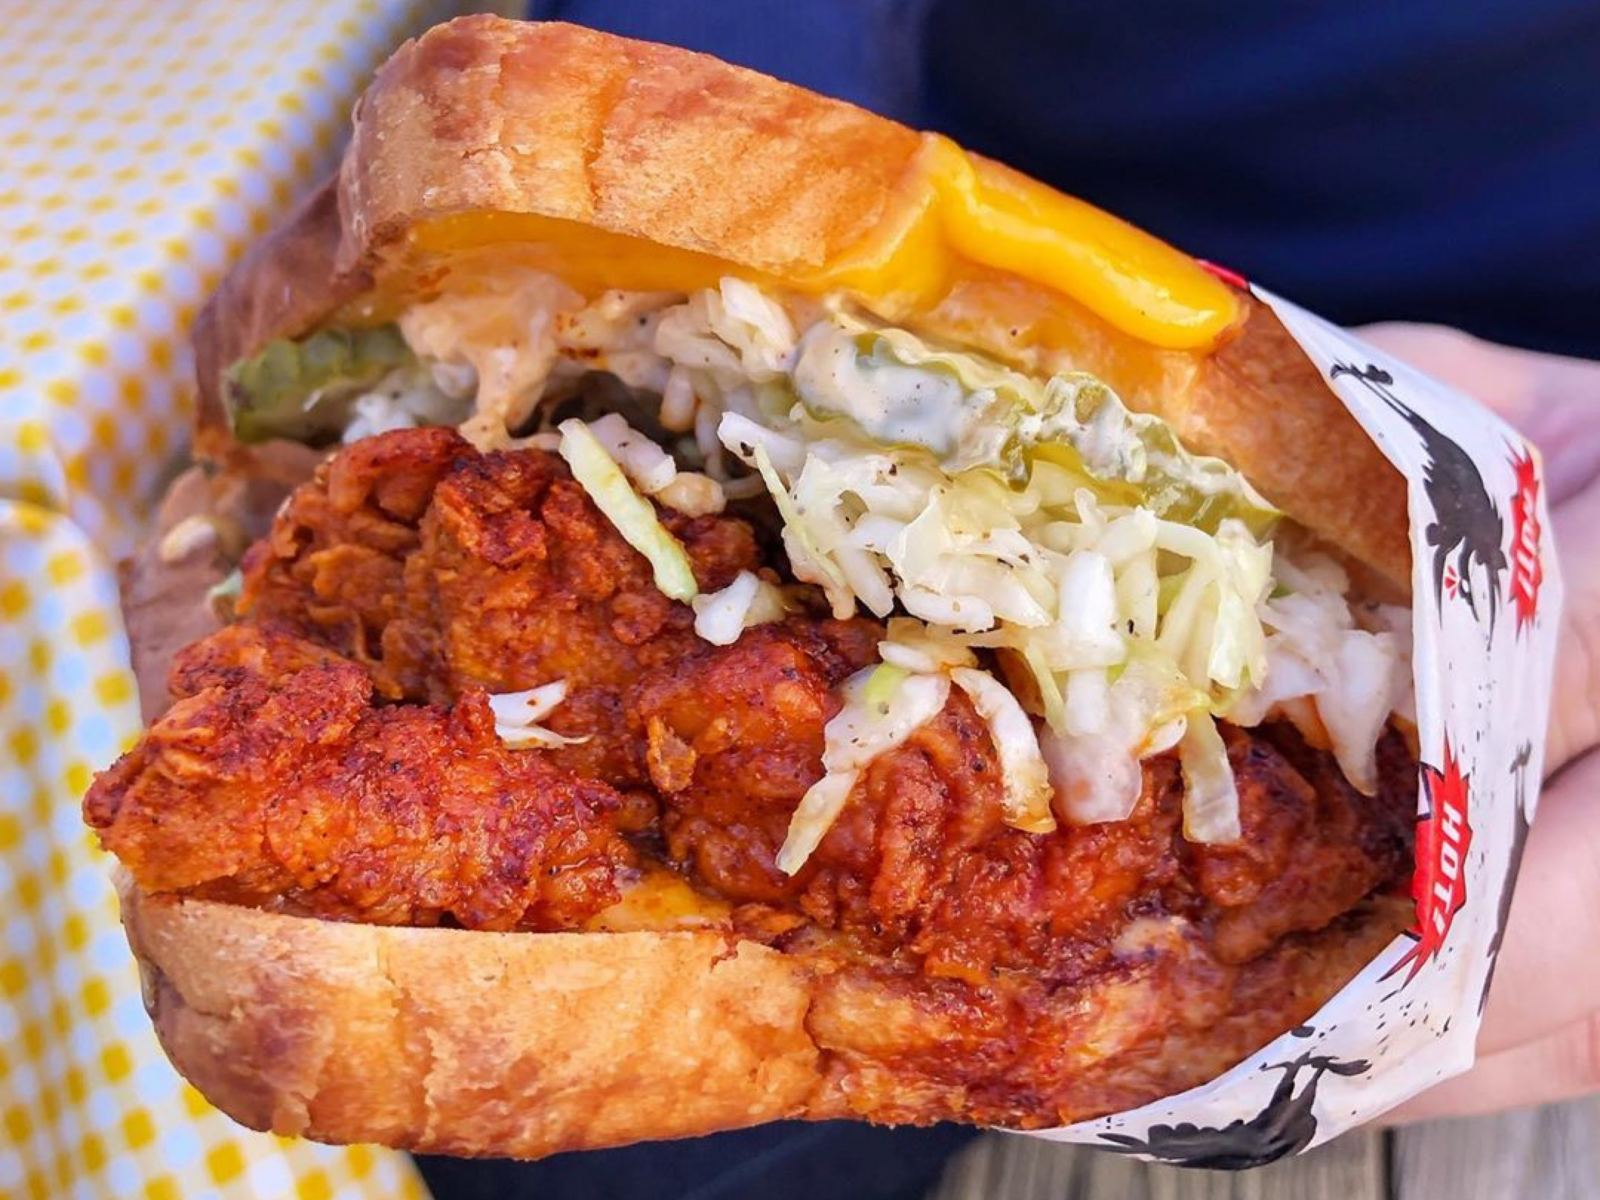 Luis-Style Fried Chicken Sando at Howlin' Ray's in Chinatown